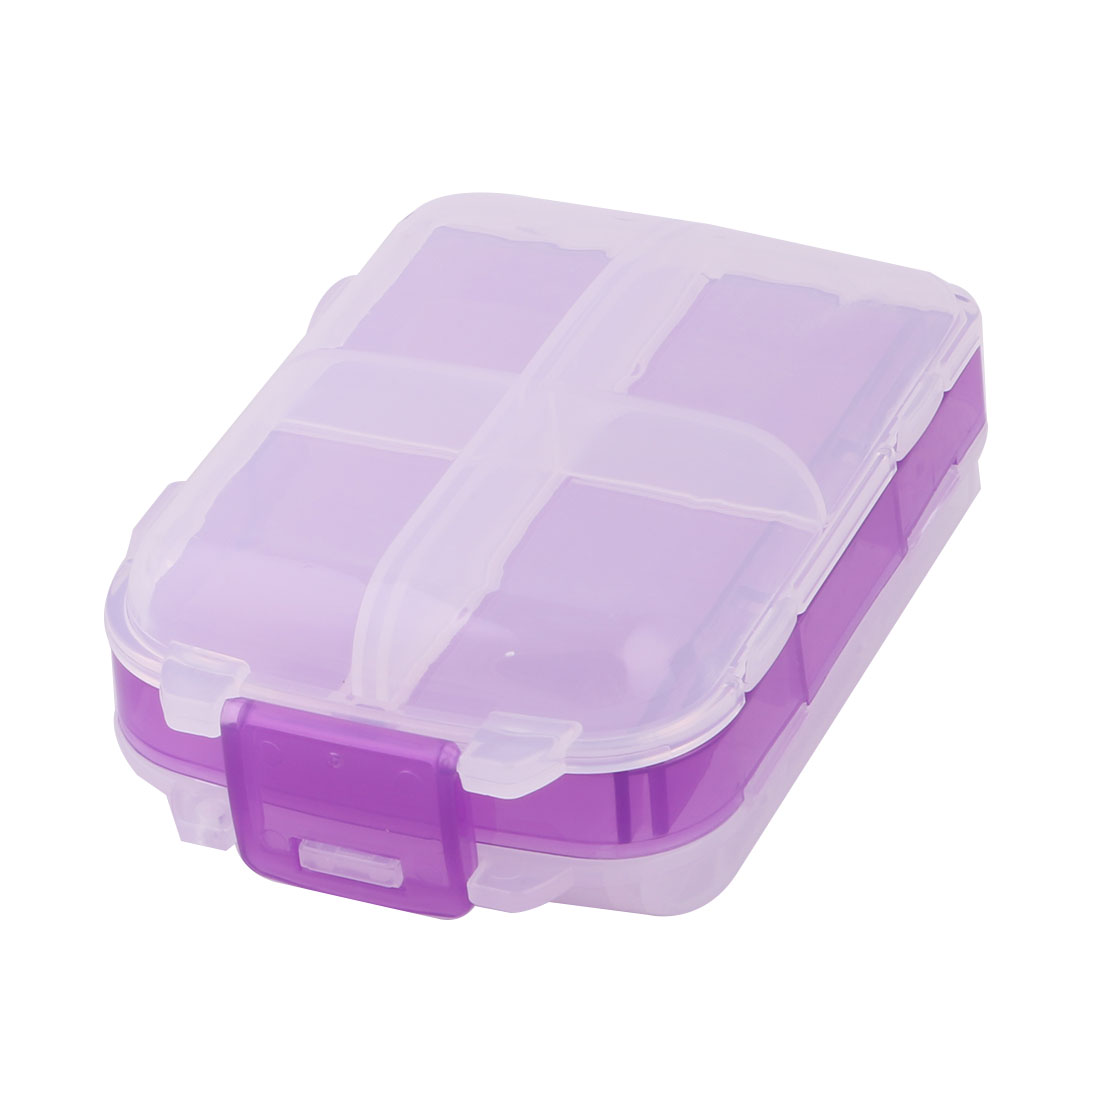 Traveling Camping 8 Compartments Capsule Pill Storage Box Container Purple Clear - image 5 of 5